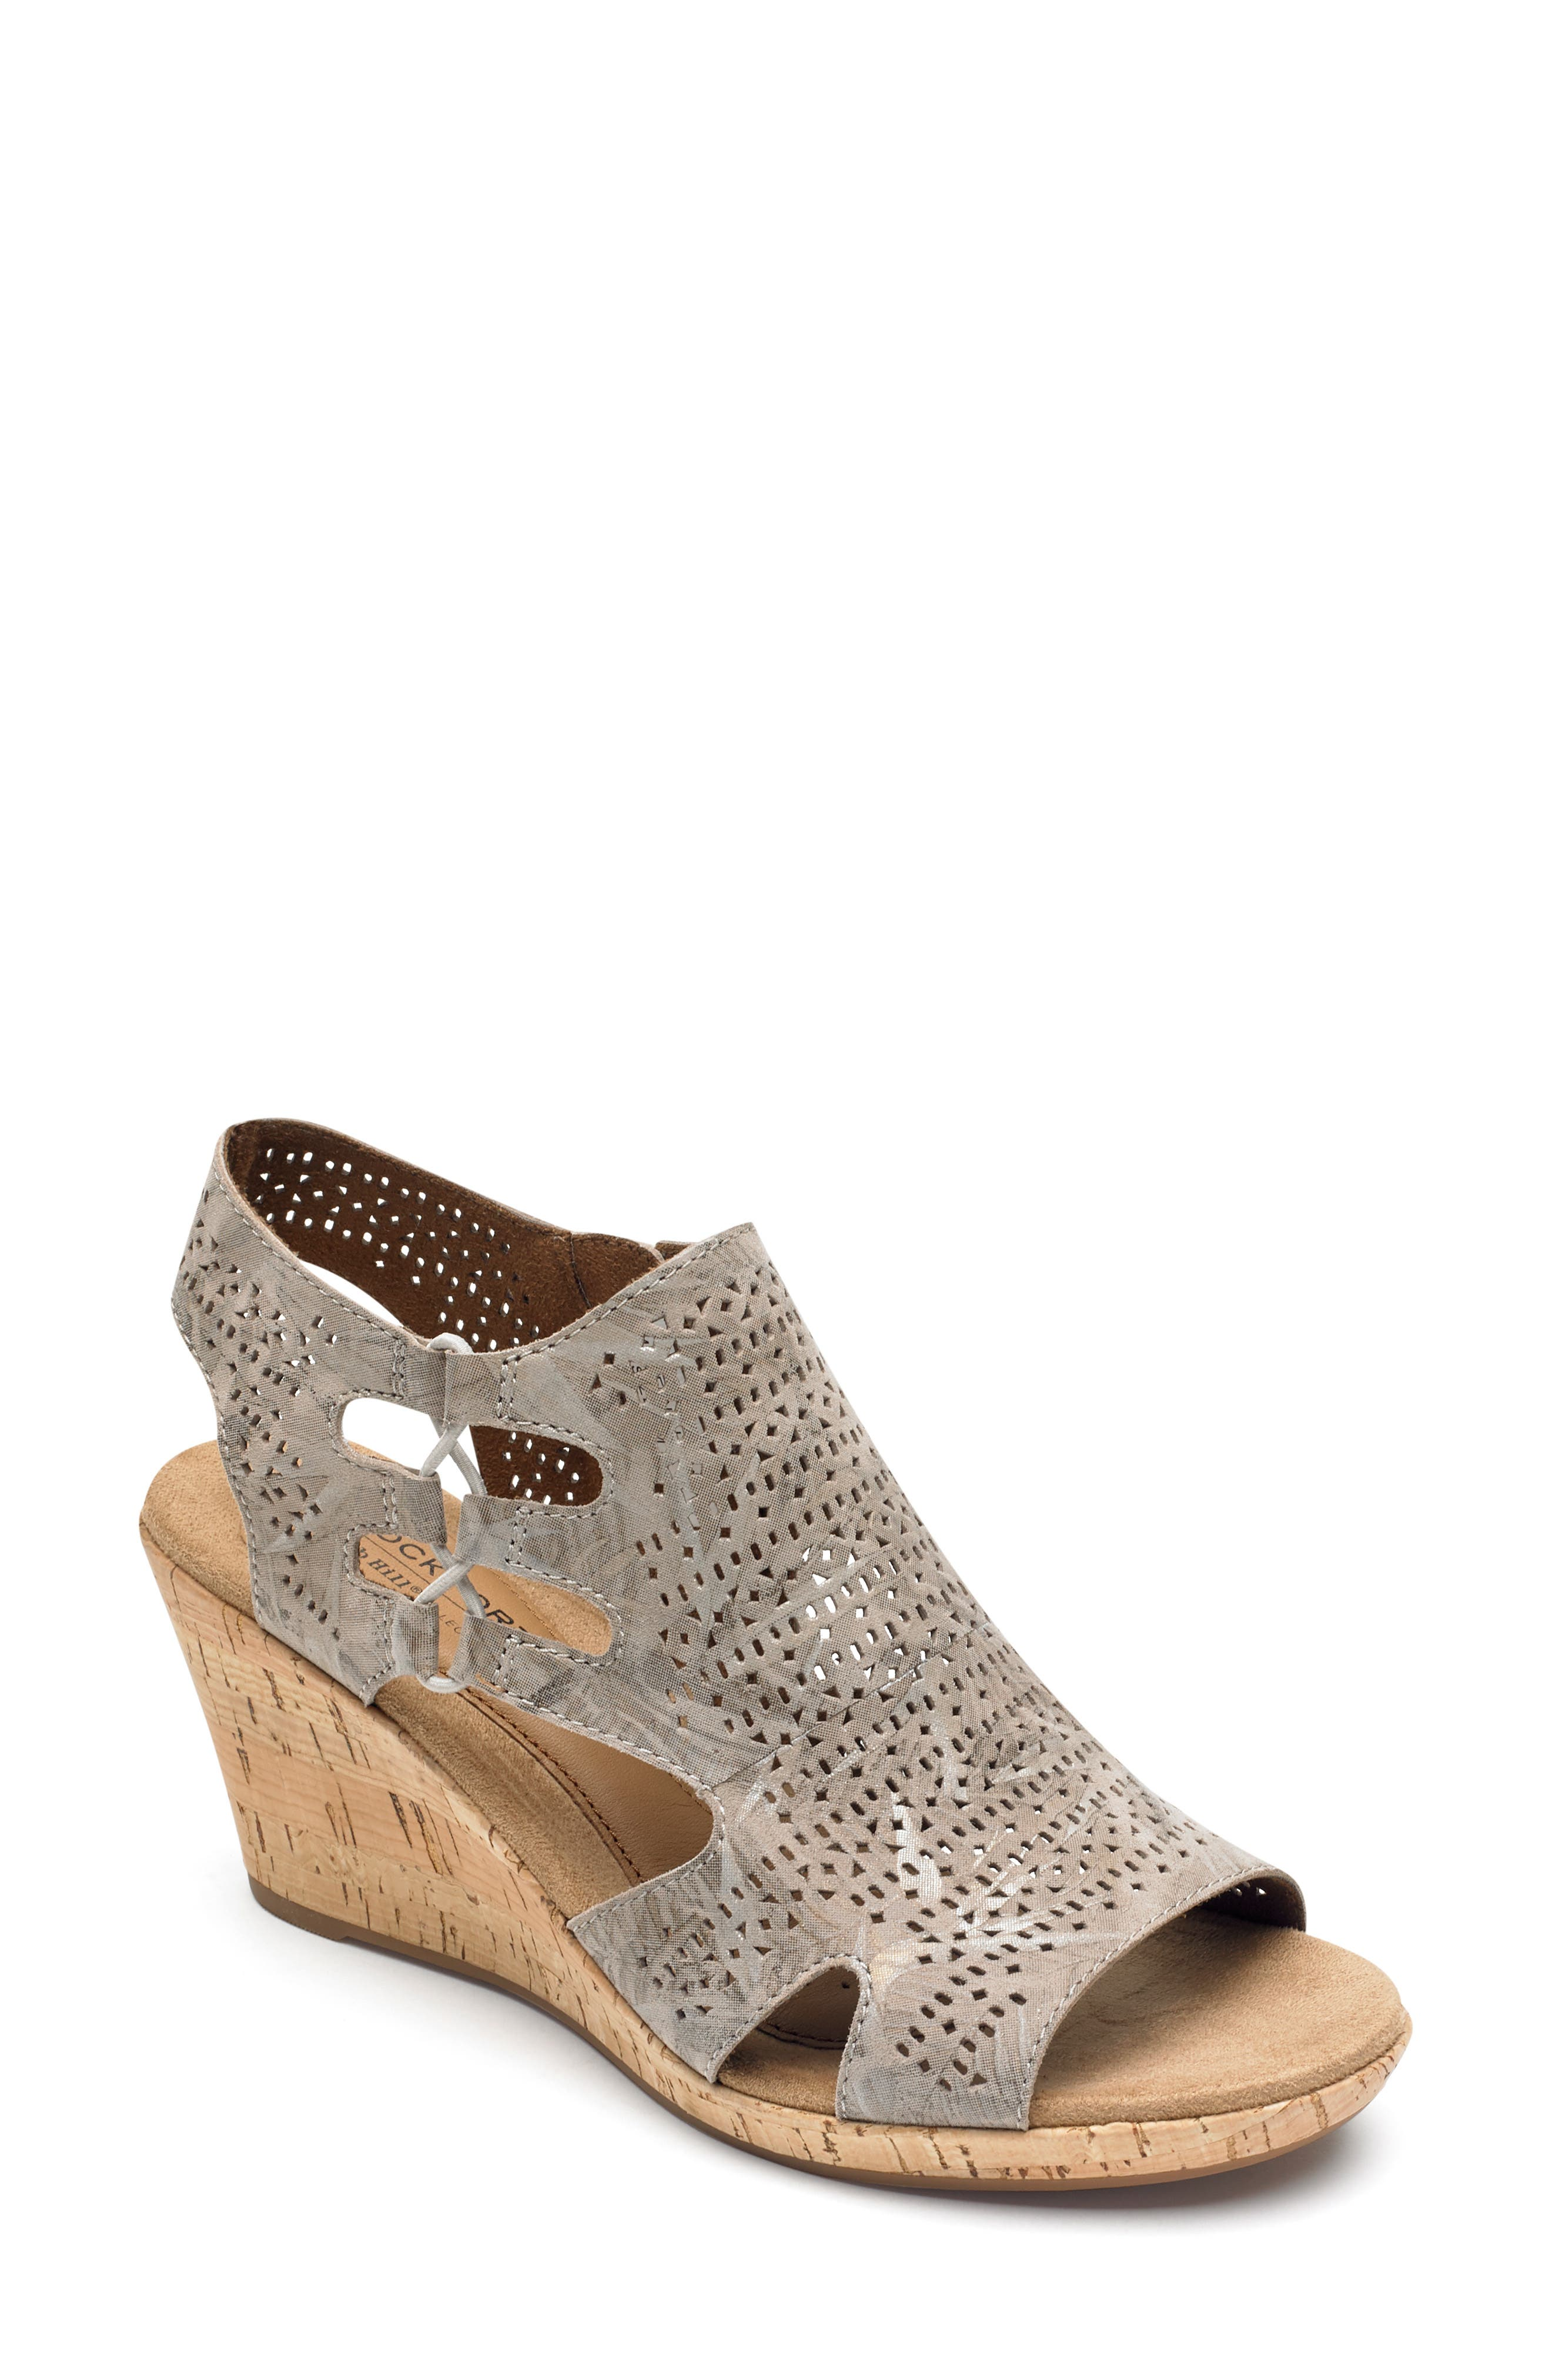 ROCKPORT COBB HILL, Janna Perforated Wedge Sandal, Main thumbnail 1, color, FLORAL METALLIC LEATHER